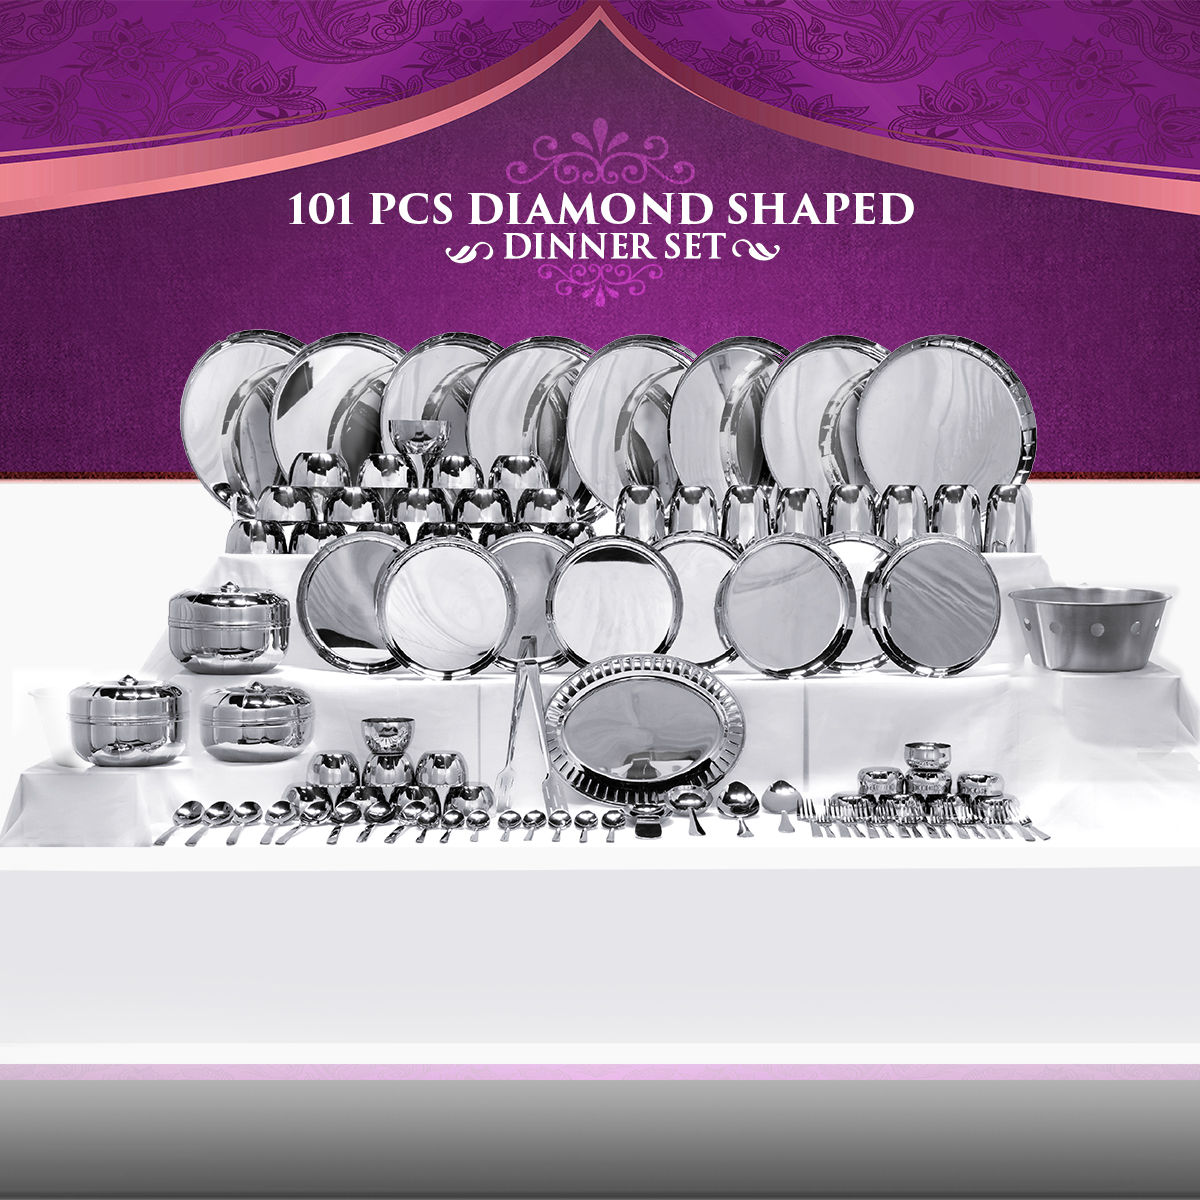 Buy 101 Pcs Diamond Shaped Stainless Steel Dinner Set Online At Best